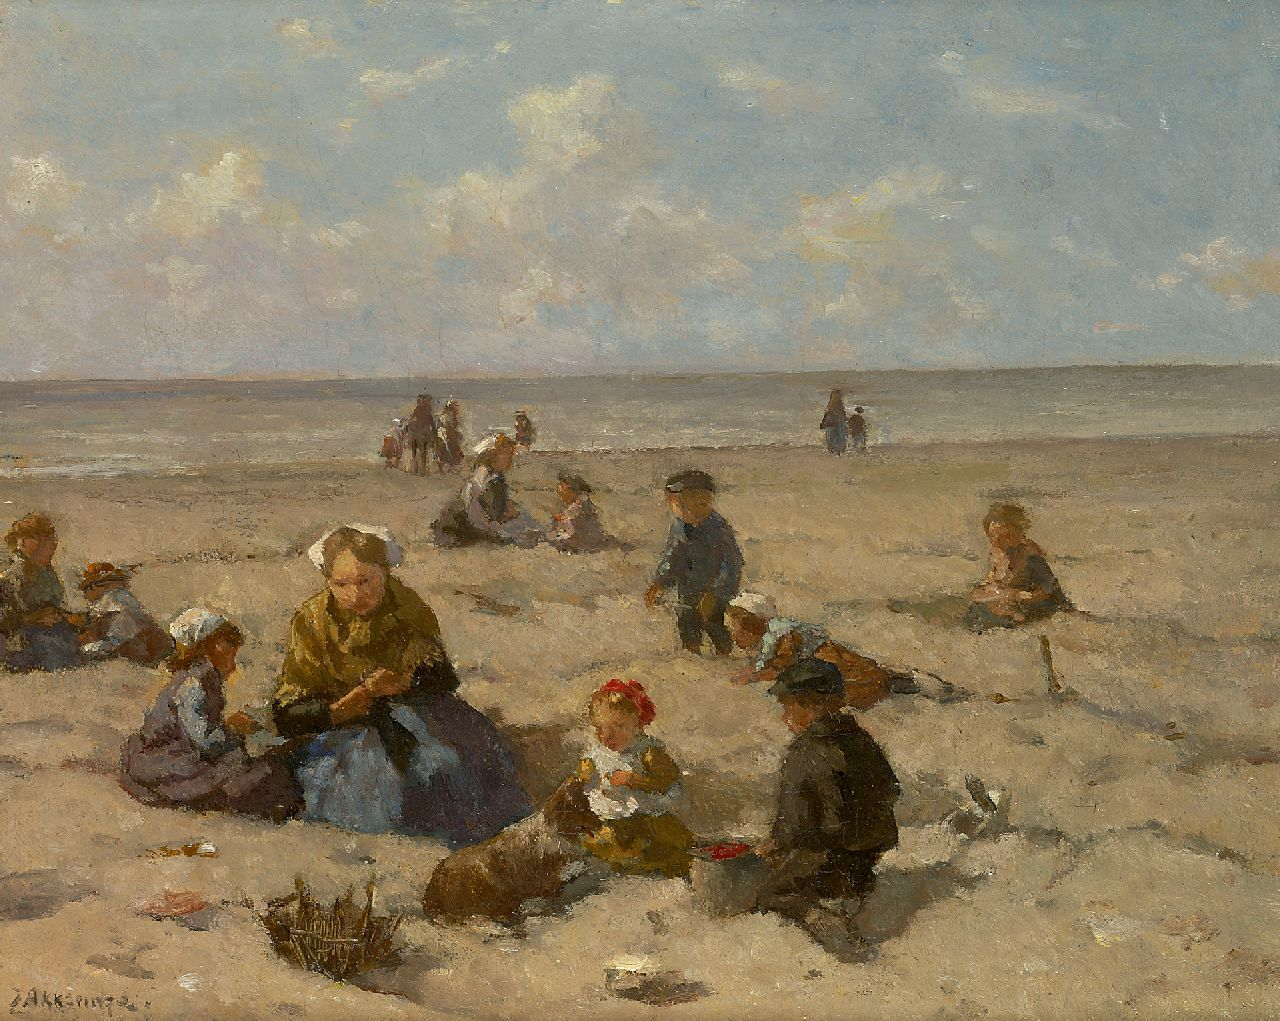 Akkeringa J.E.H.  | 'Johannes Evert' Hendrik Akkeringa | Paintings offered for sale | Playing on the beach, oil on canvas 26.7 x 33.0 cm, signed l.l. and on the reverse and dated 1937 on the reverse